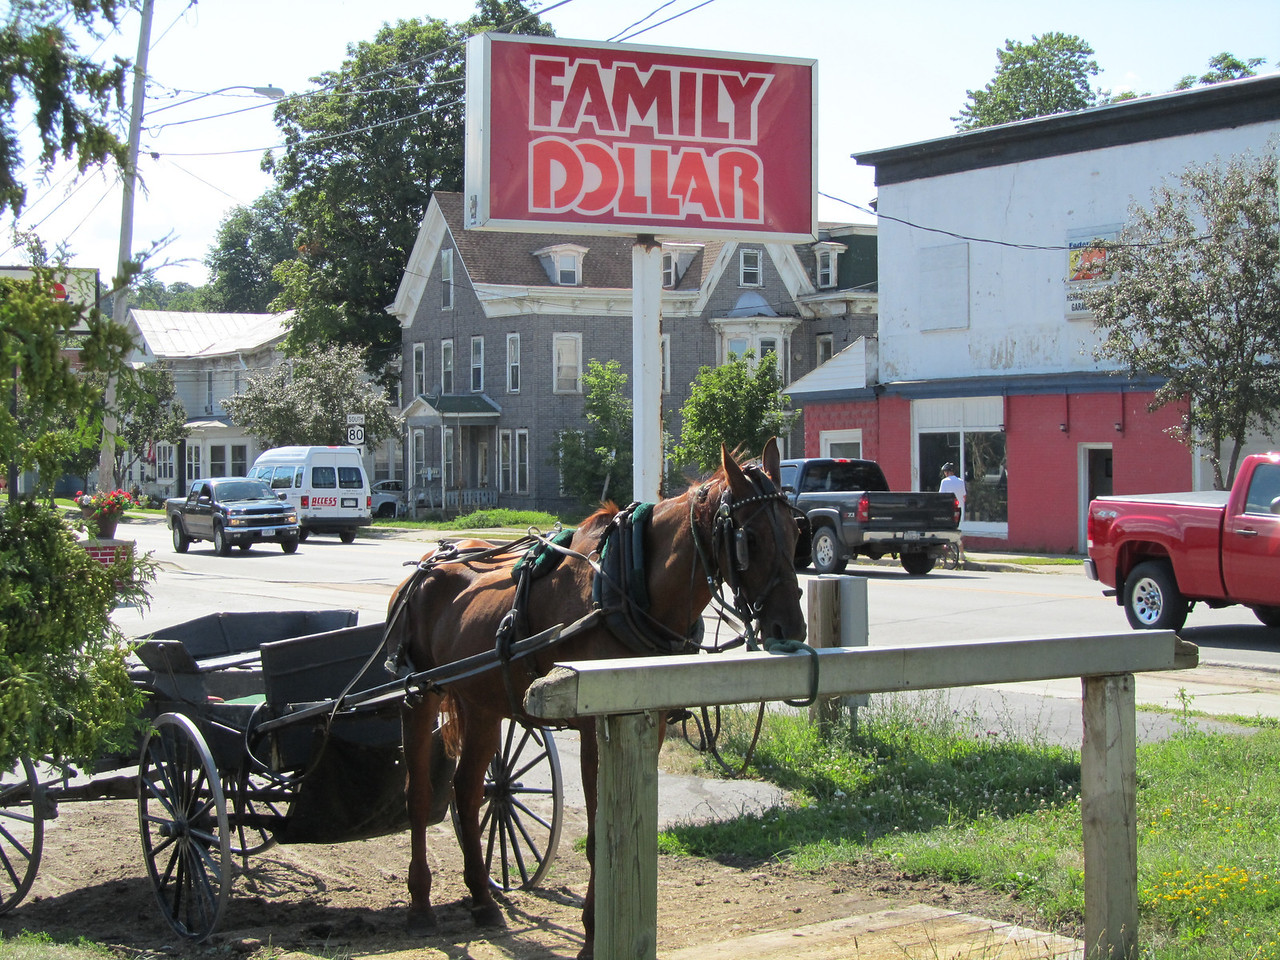 Parking spot at the Dollar Store for the Amish. Poor horse looks malnourished and was covered in flies. Not a very good life.